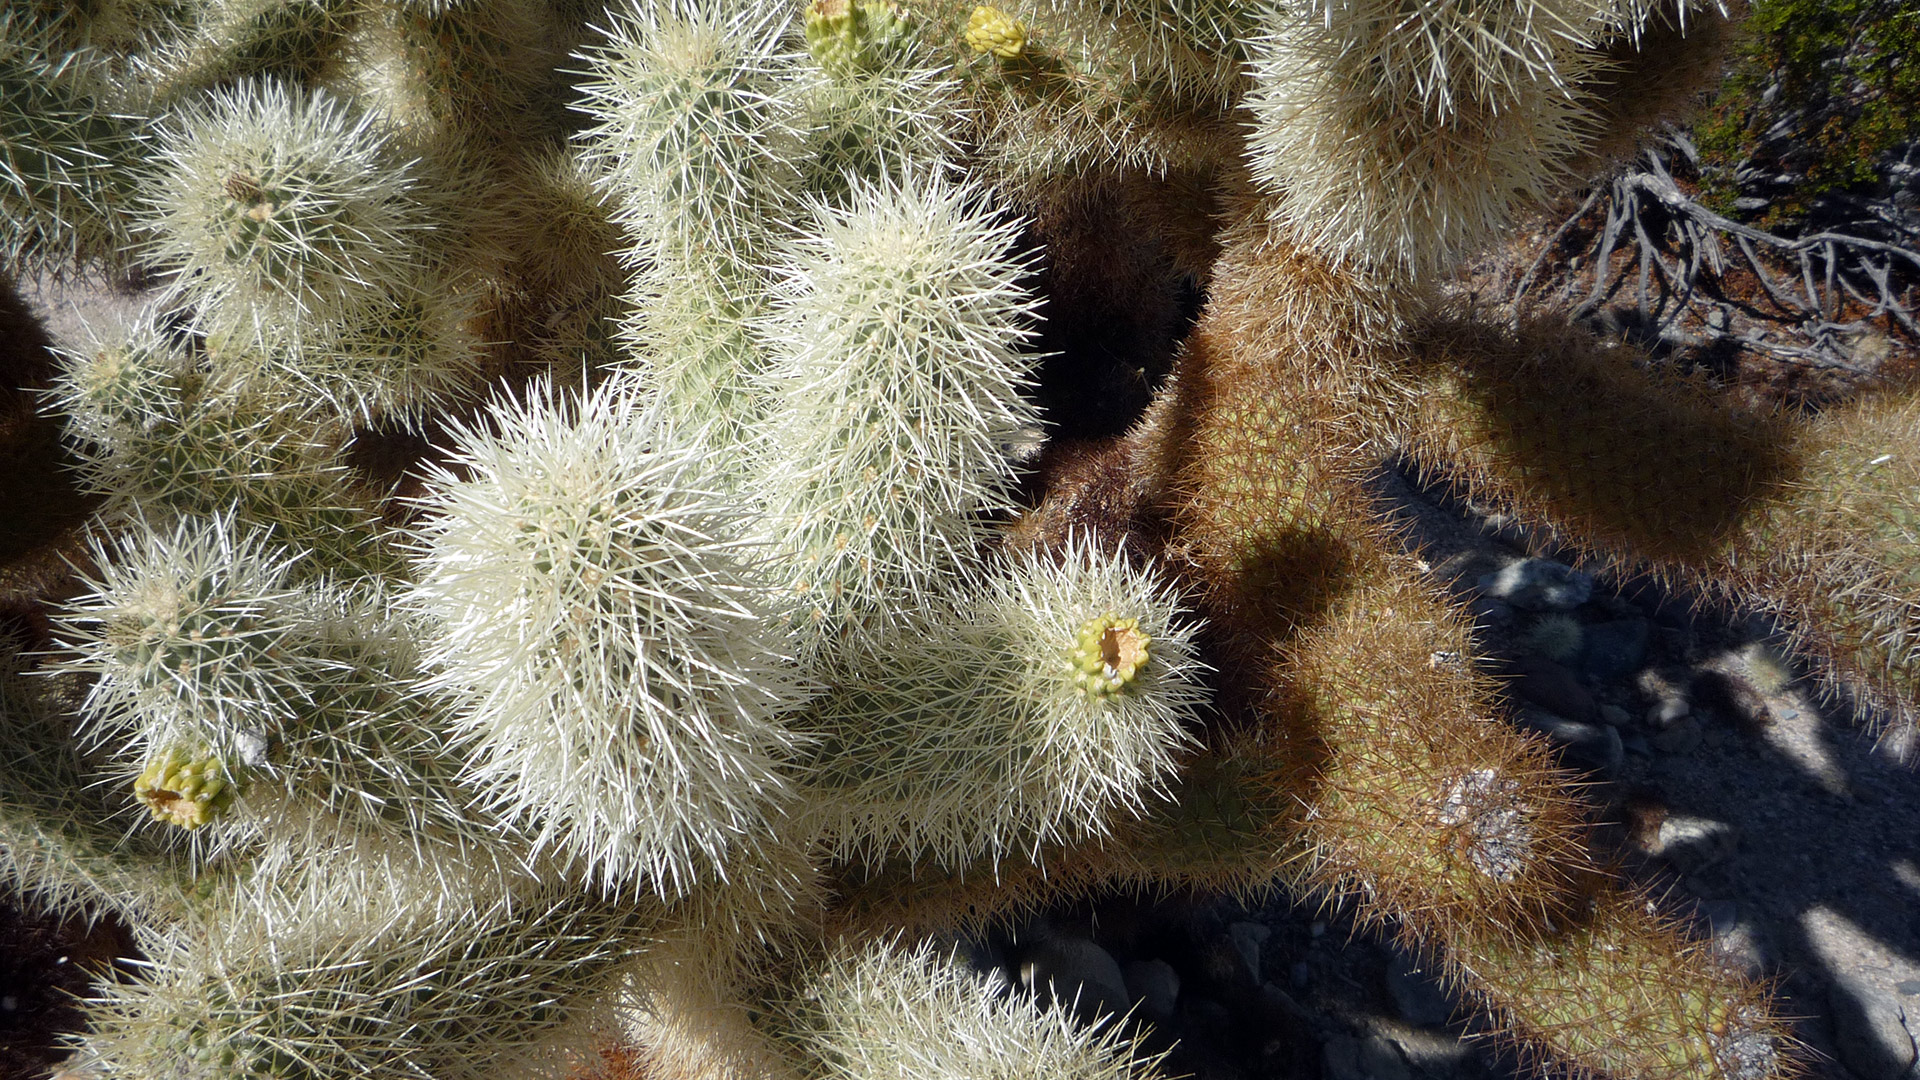 Close-up of a Cholla cactus.